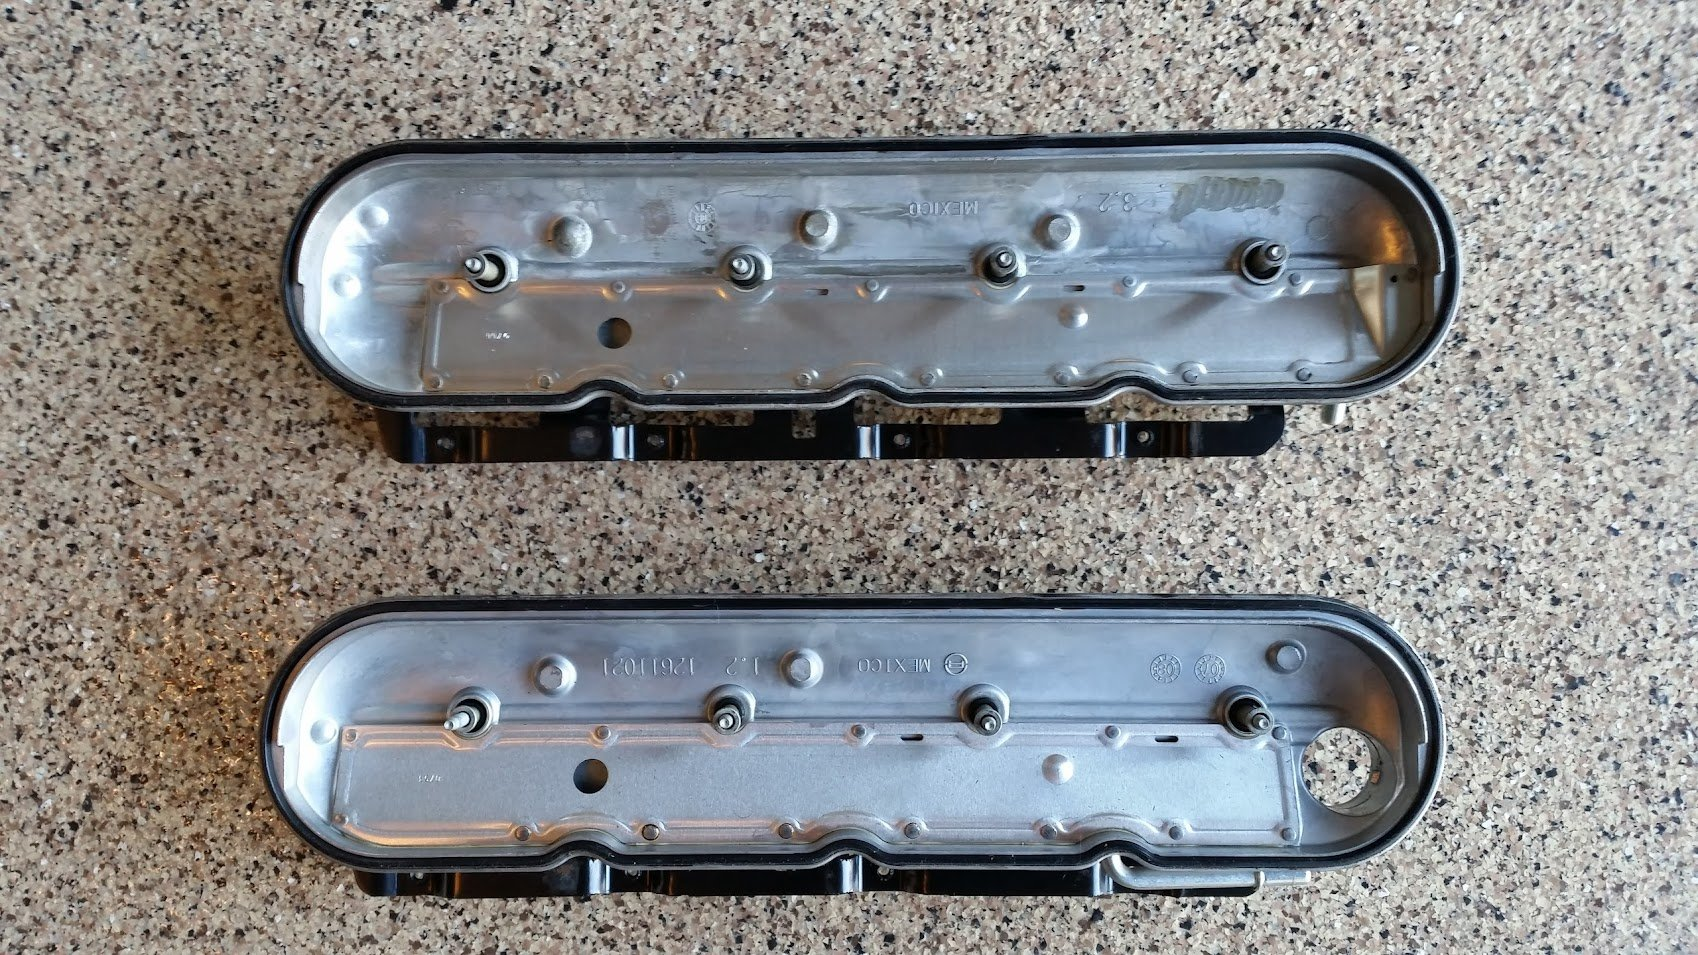 Stock LS3/L76 Valve Covers | Pontiac G8 Forum